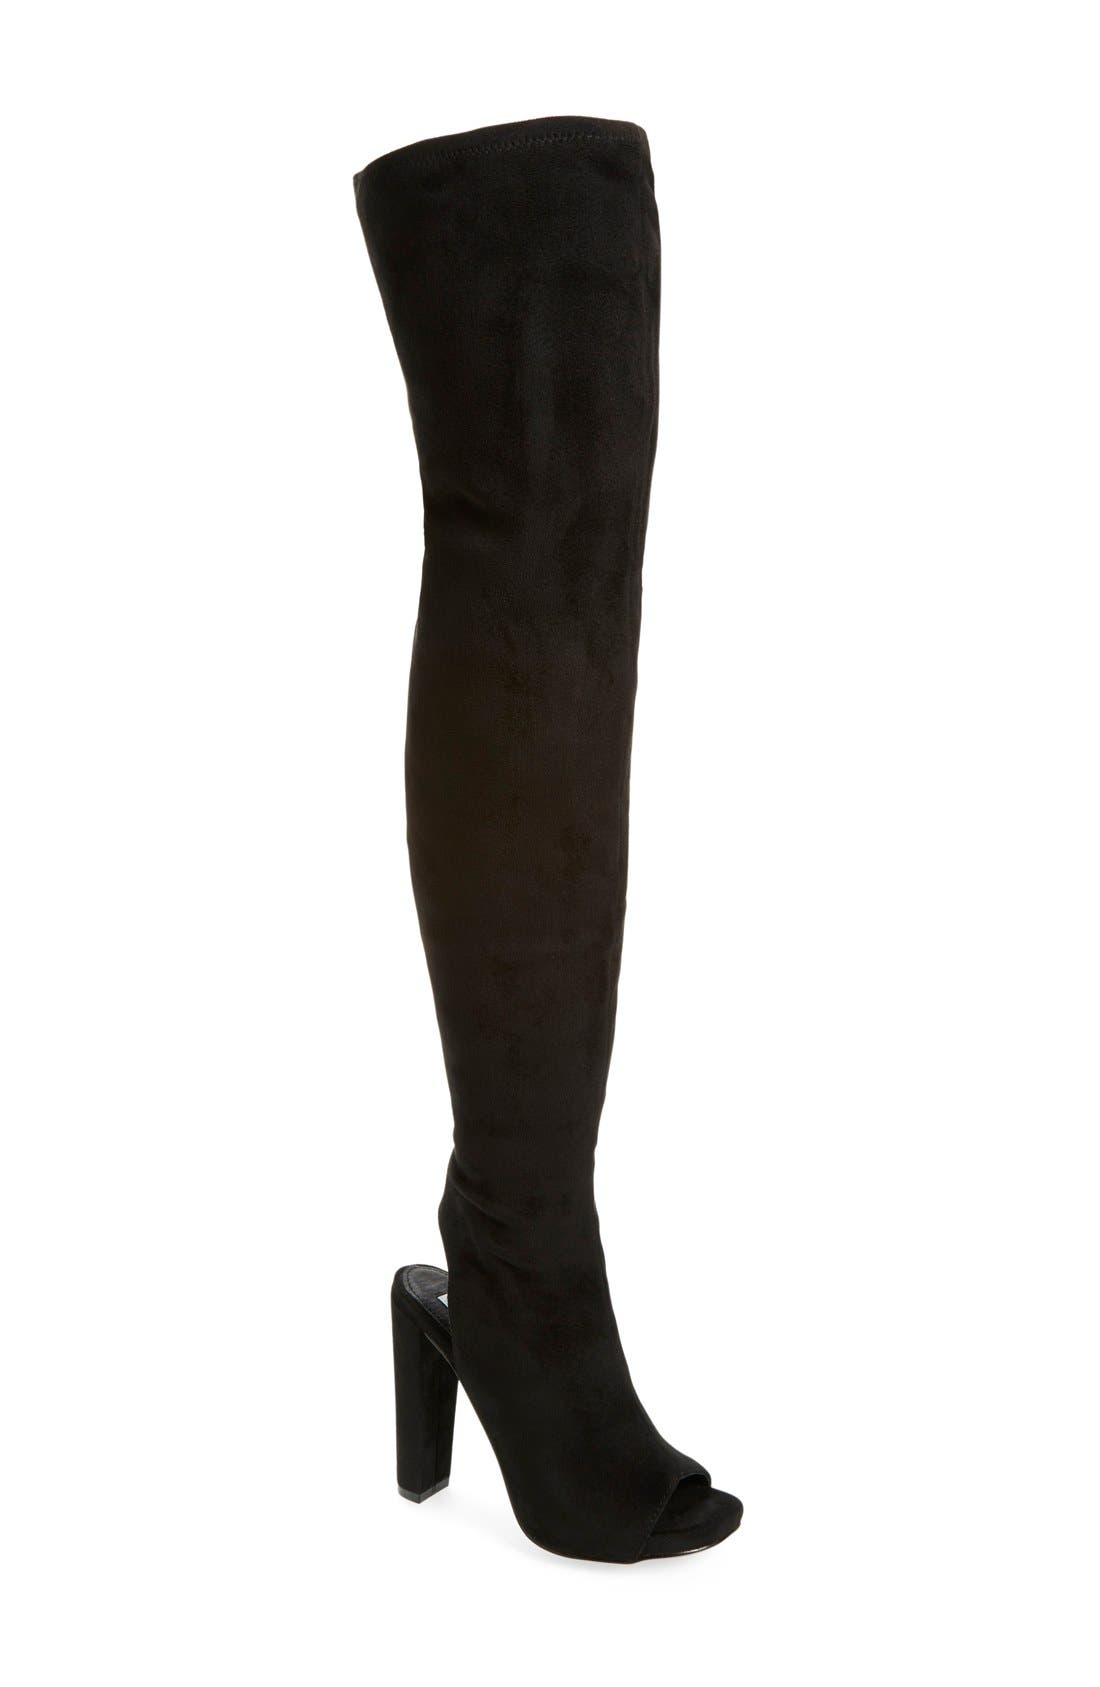 Main Image - Steve Madden 'Yimme' Over the Knee Boot (Women) (Wide Calf)